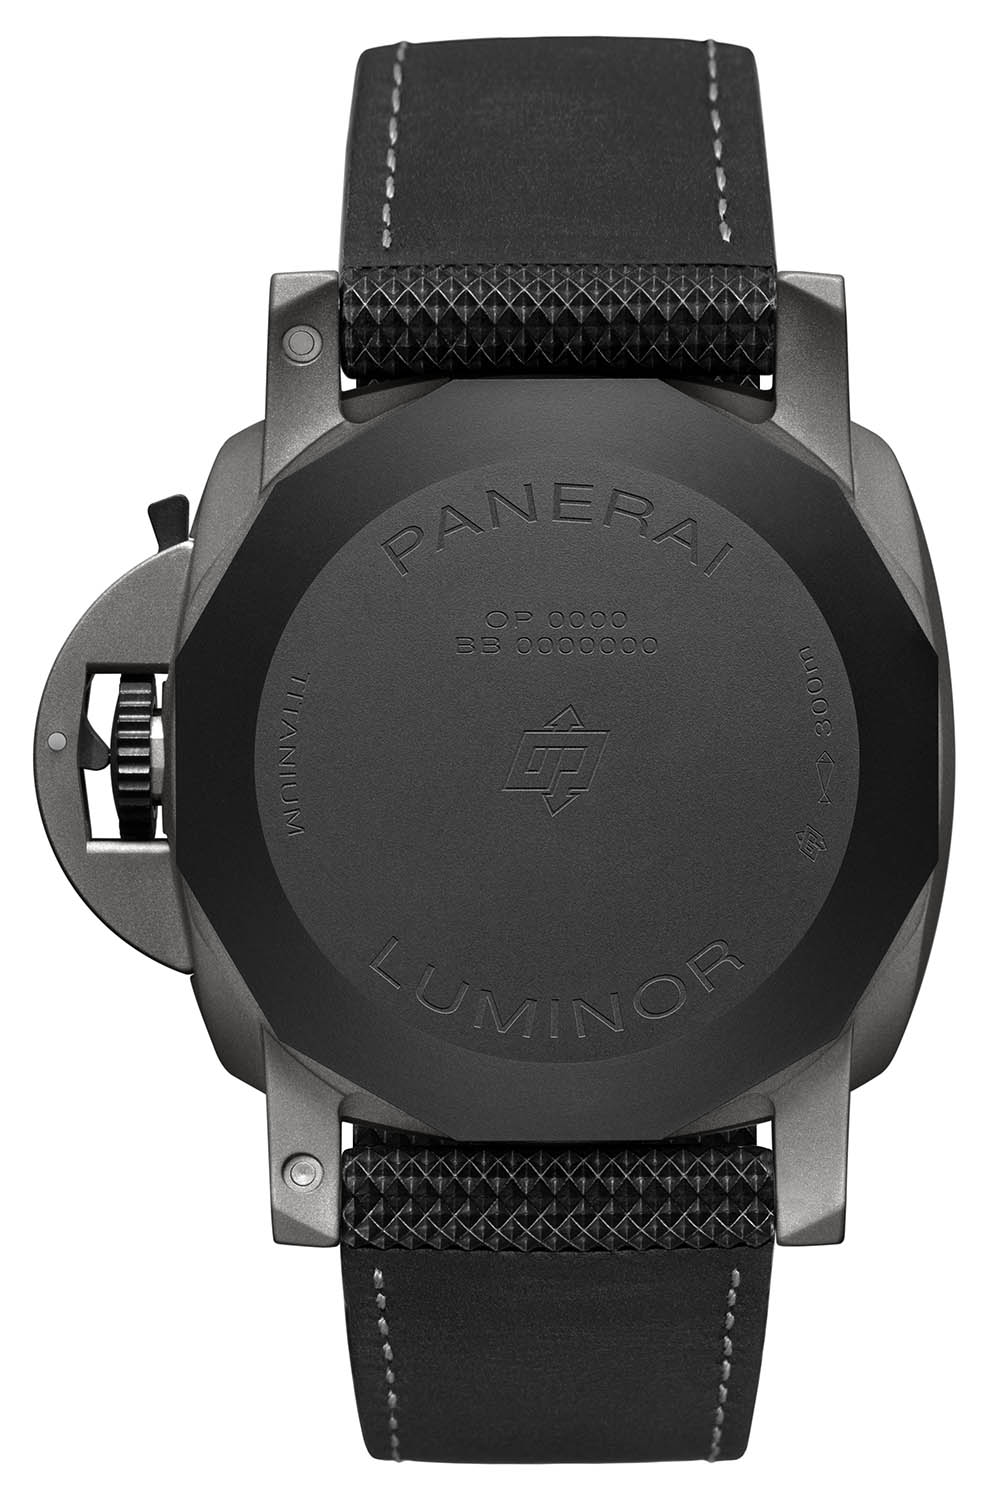 Panerai Luminor Marina DMLS titanium 44mm PAM1662